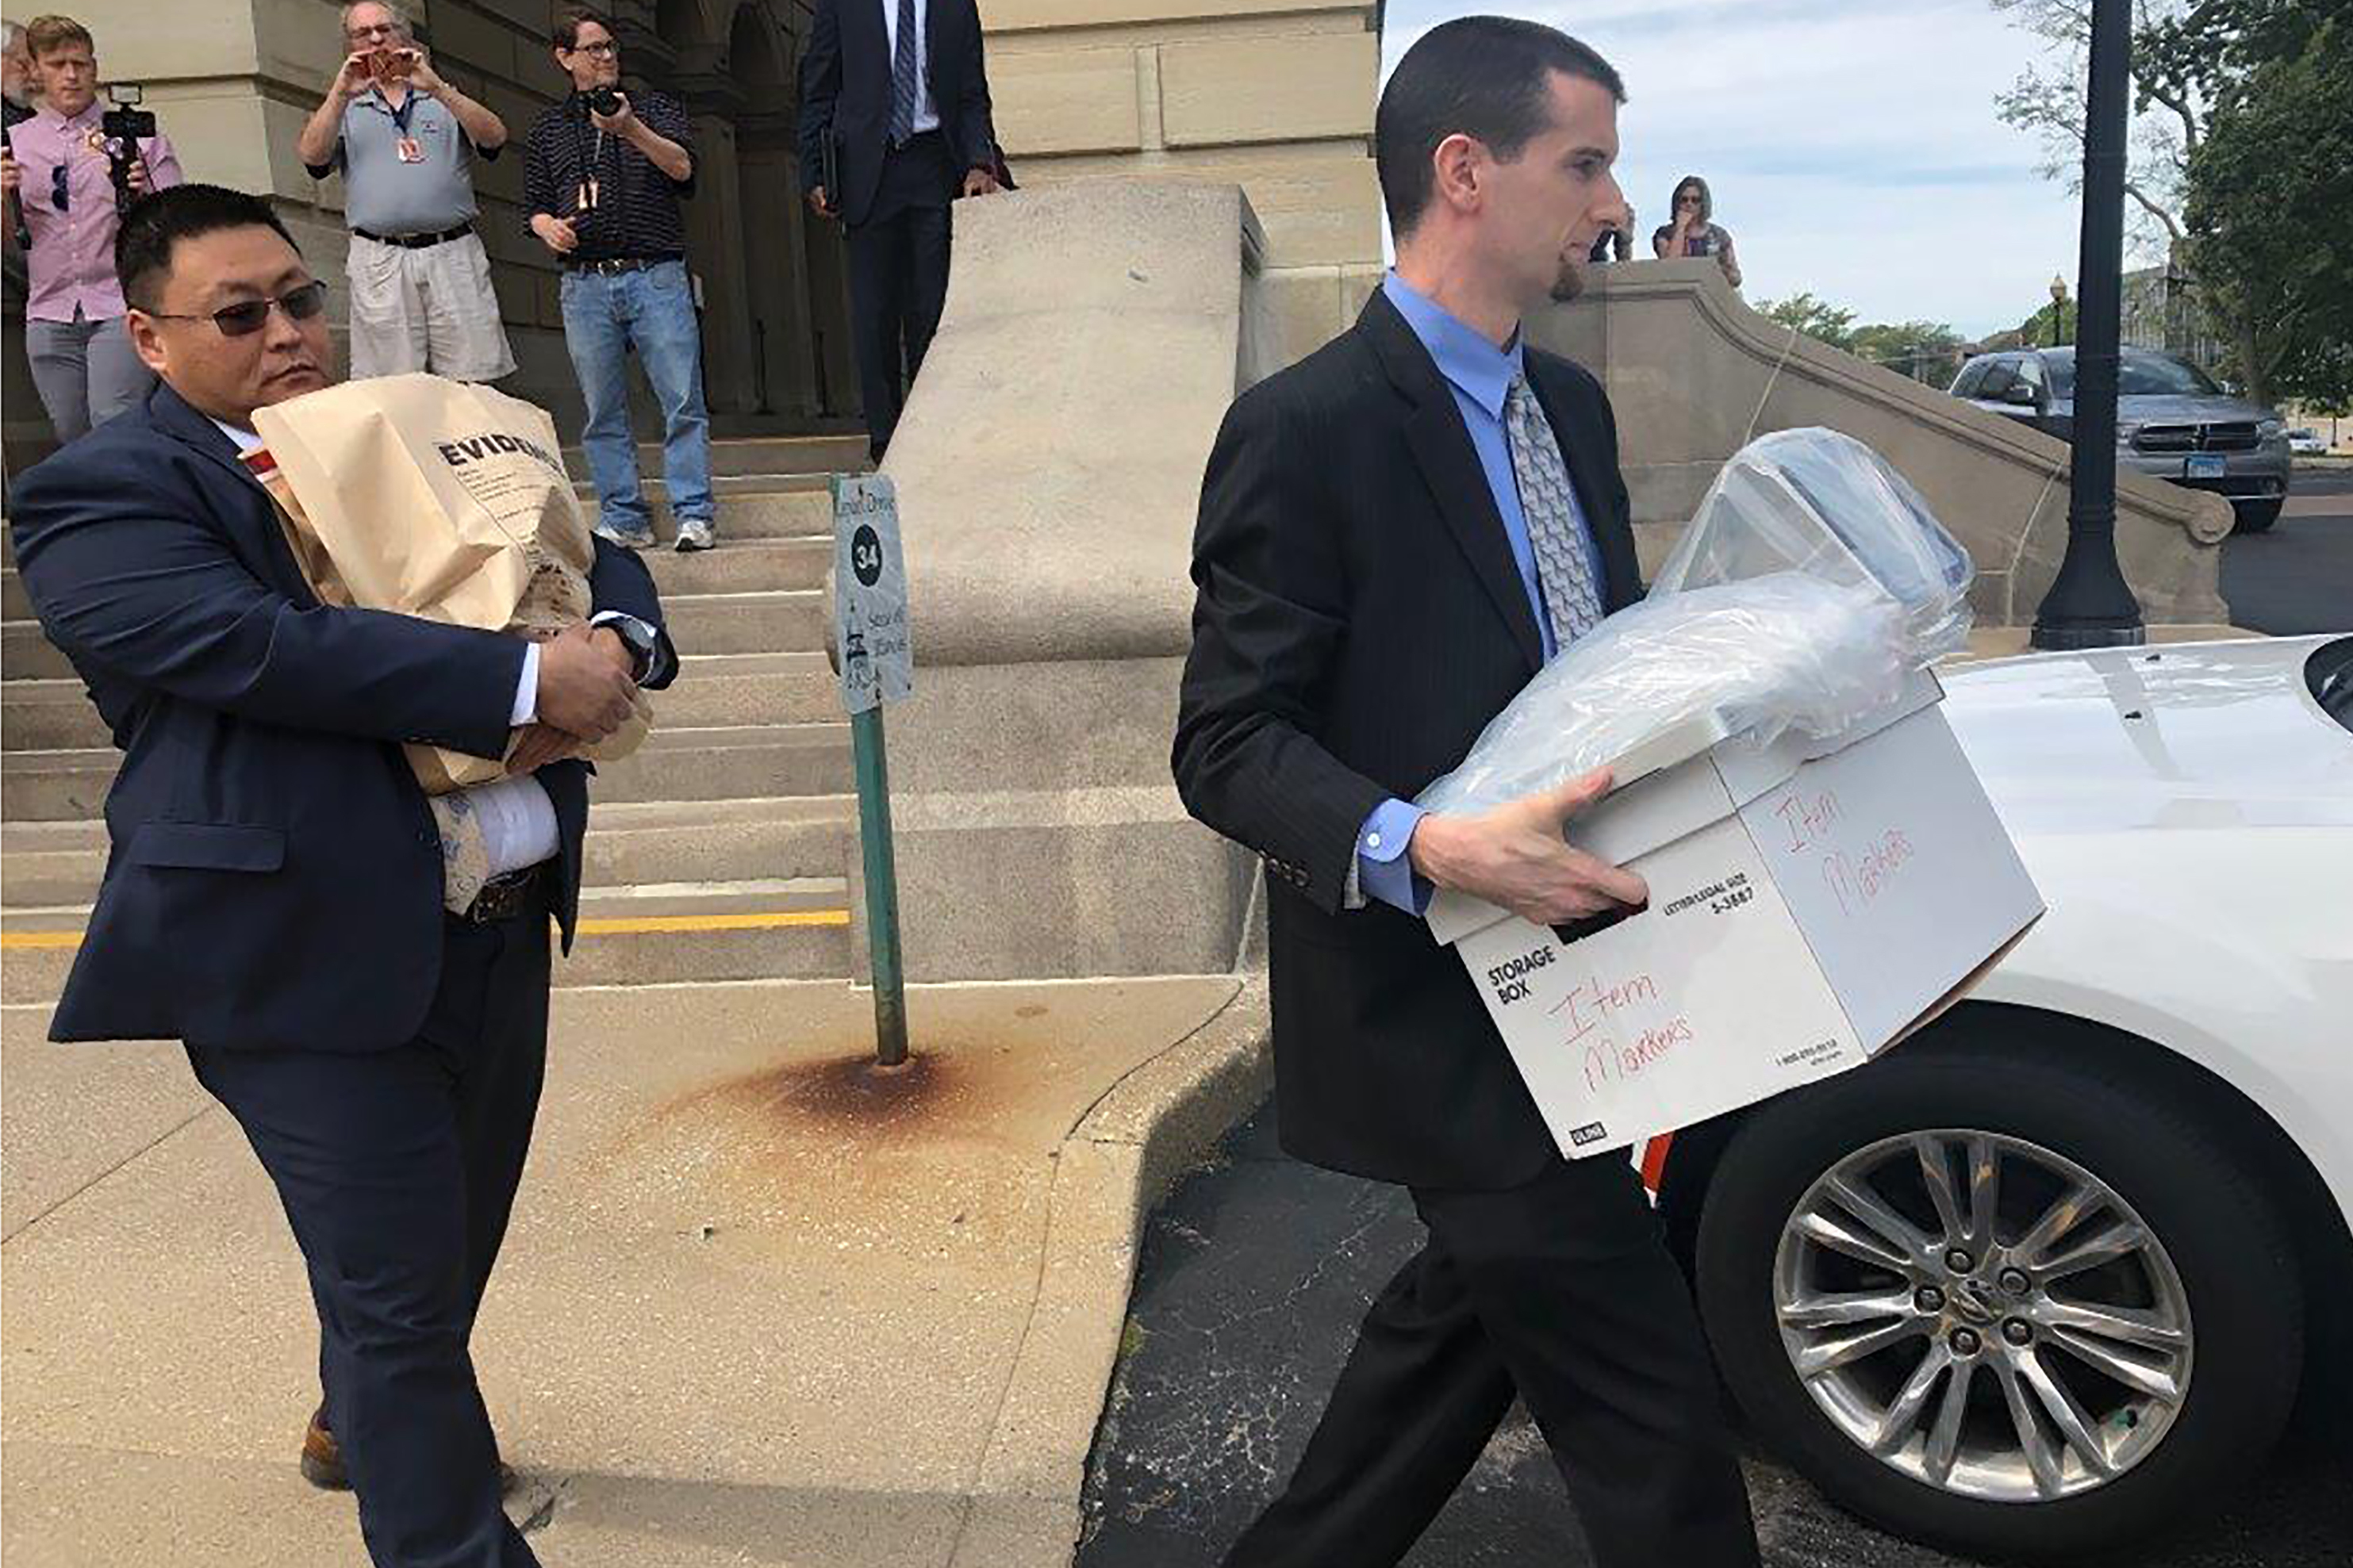 photo of men carrying evidence boxes